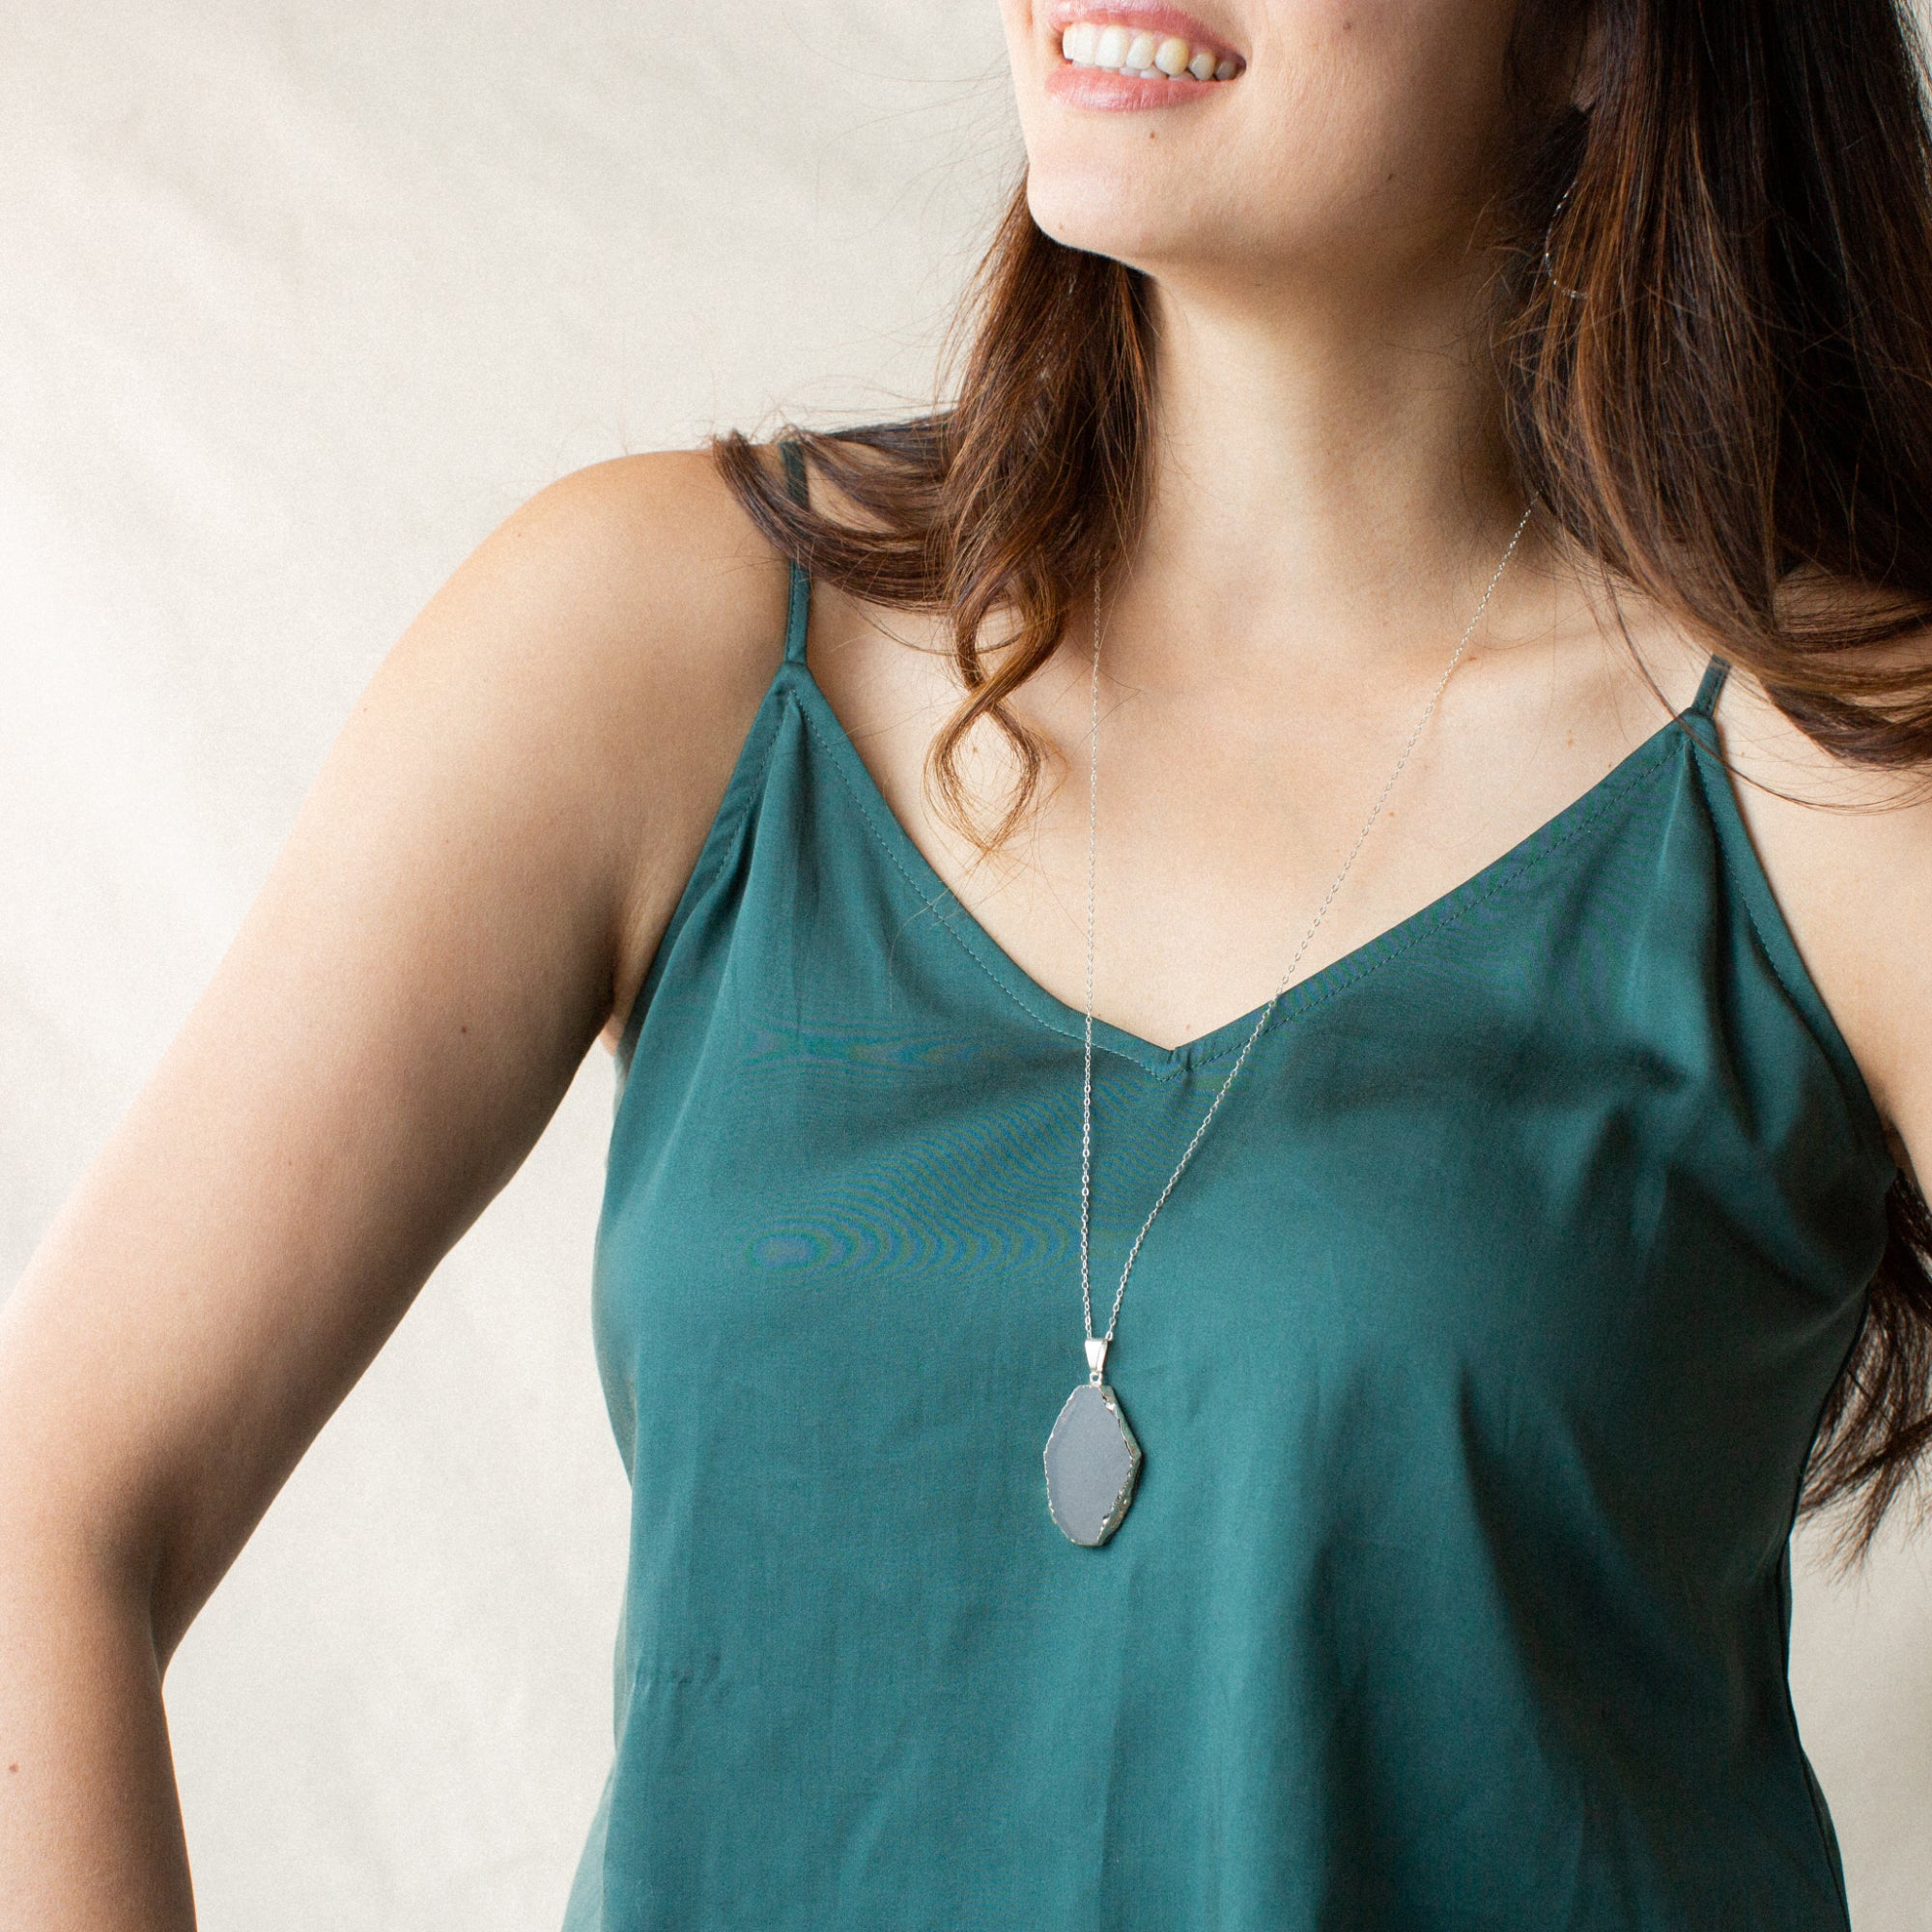 Woman in Green Shirt Smiling and Wearing Slice-shaped Smoky Quartz and Silver Long Necklace 'I Am Brave' Model Photo by Asha Blooms